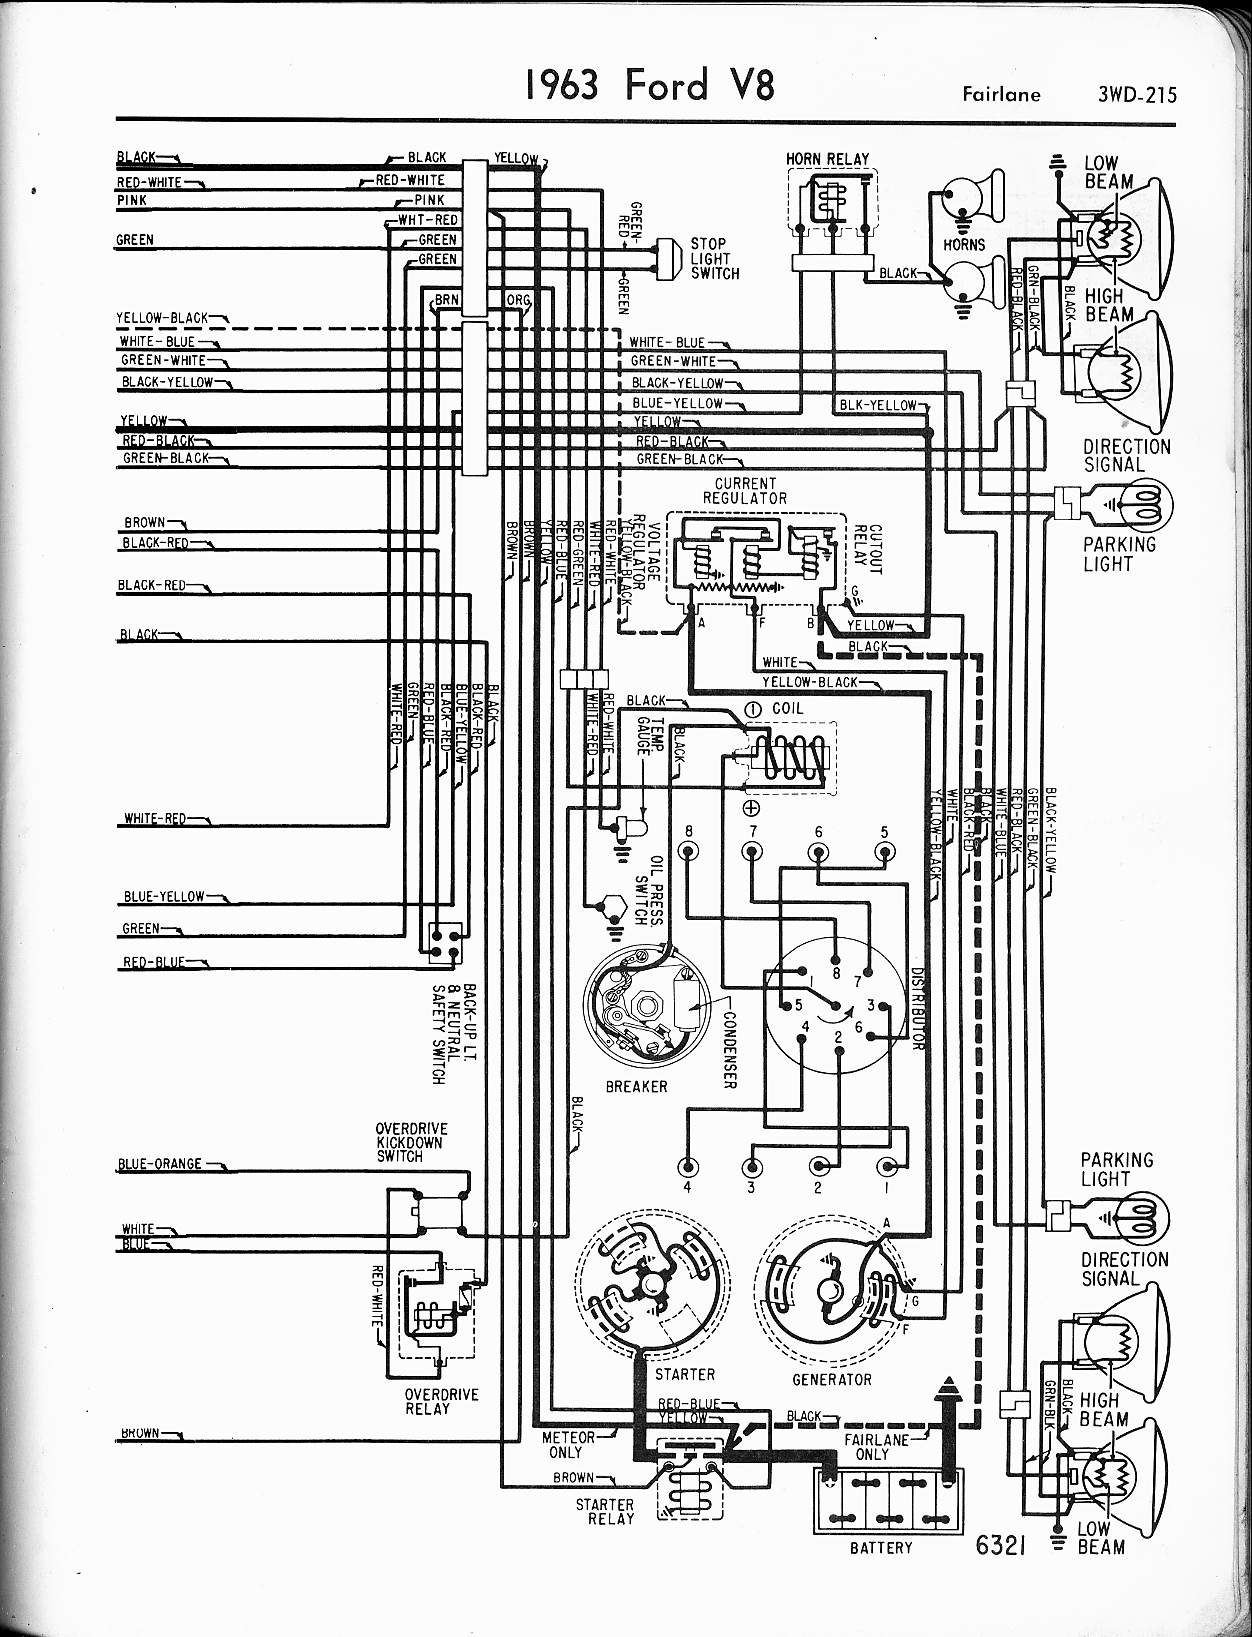 MWire5765 215 1964 ford galaxie radio diagram schematics wiring diagrams \u2022